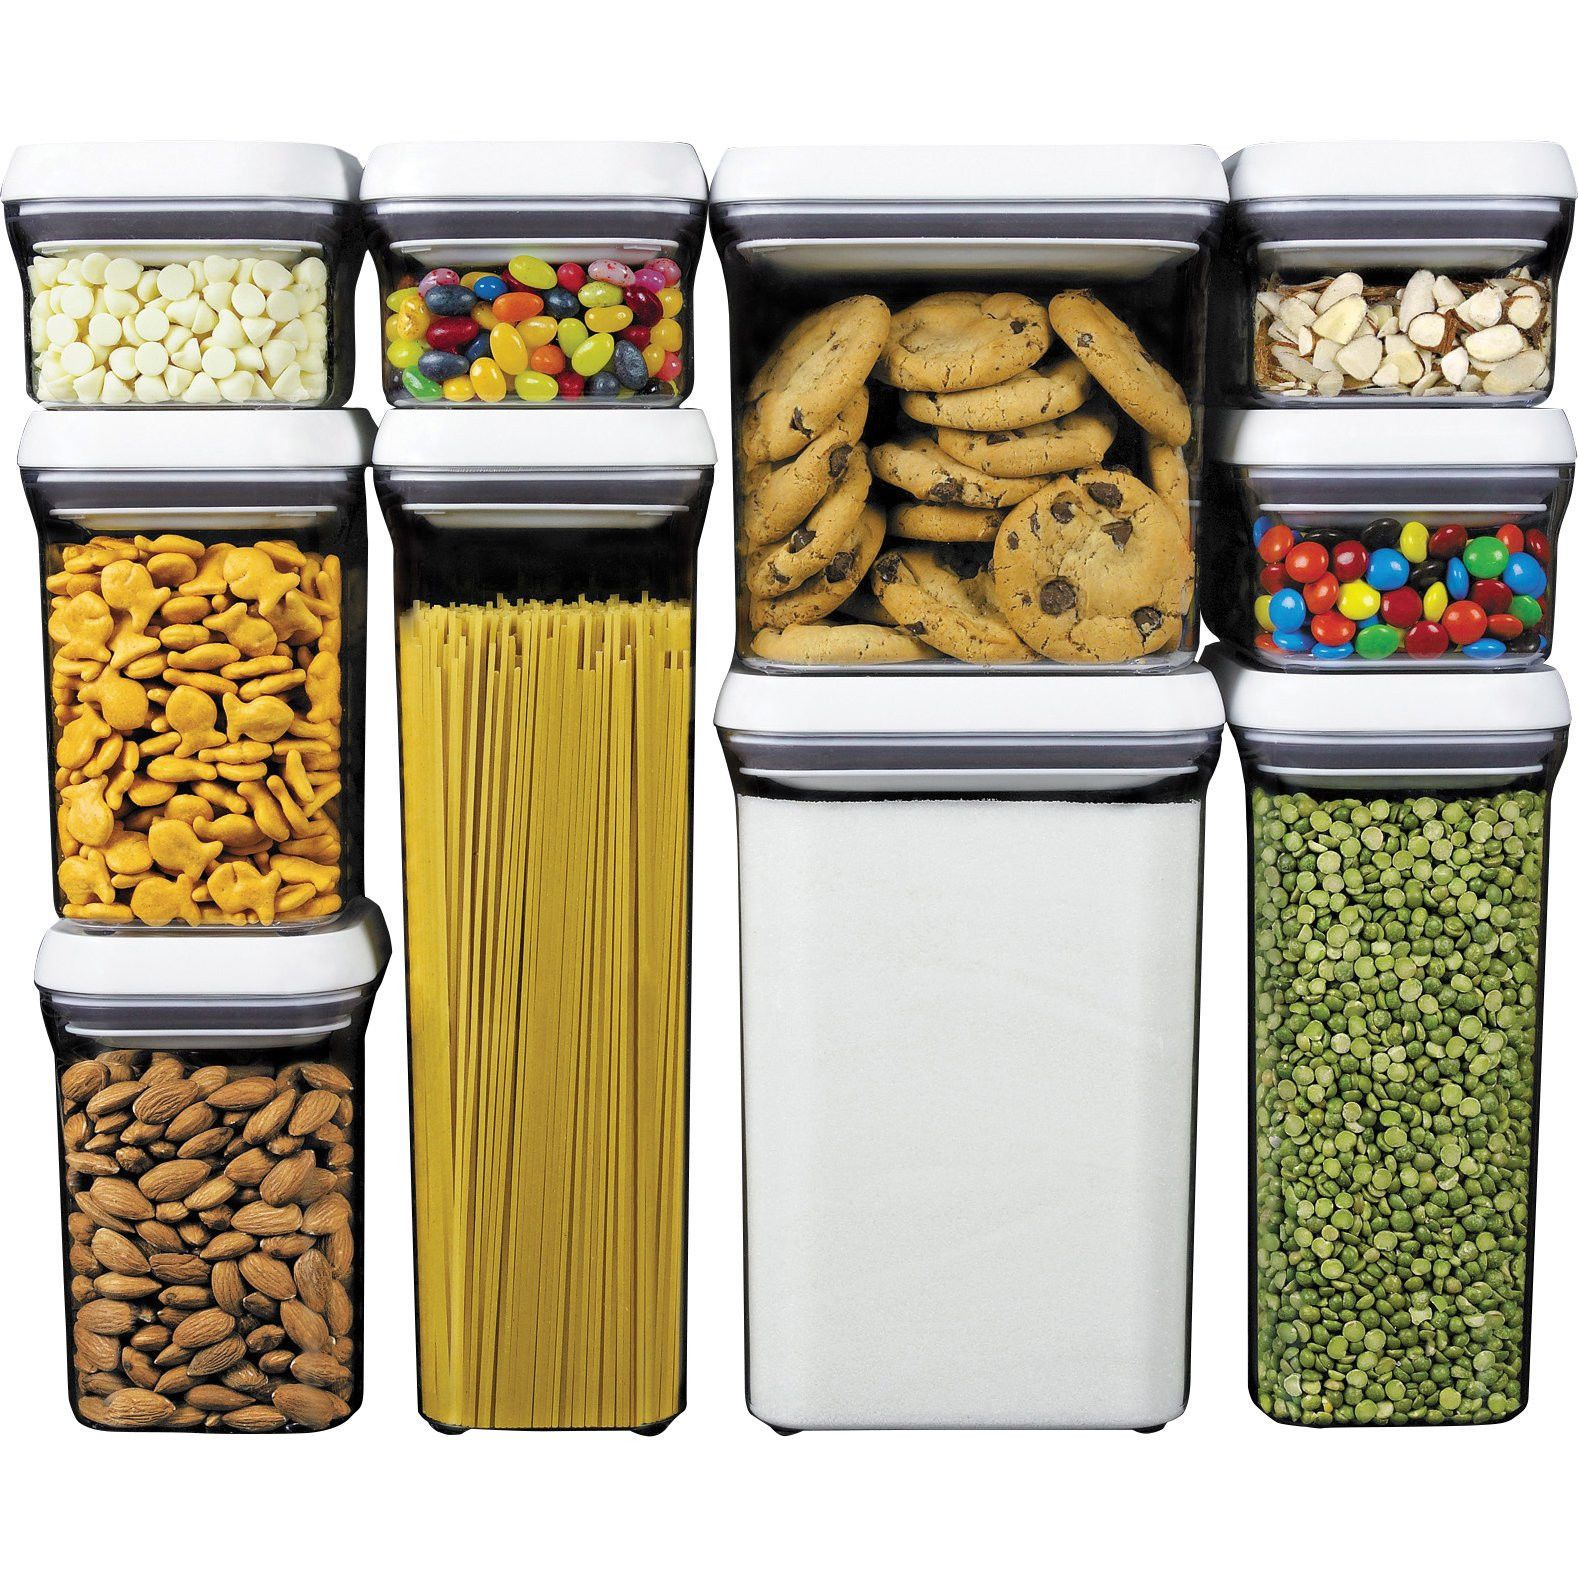 Food Storage Containers 20655: Oxo Good Grips 10 Piece Pop Container Set,  White